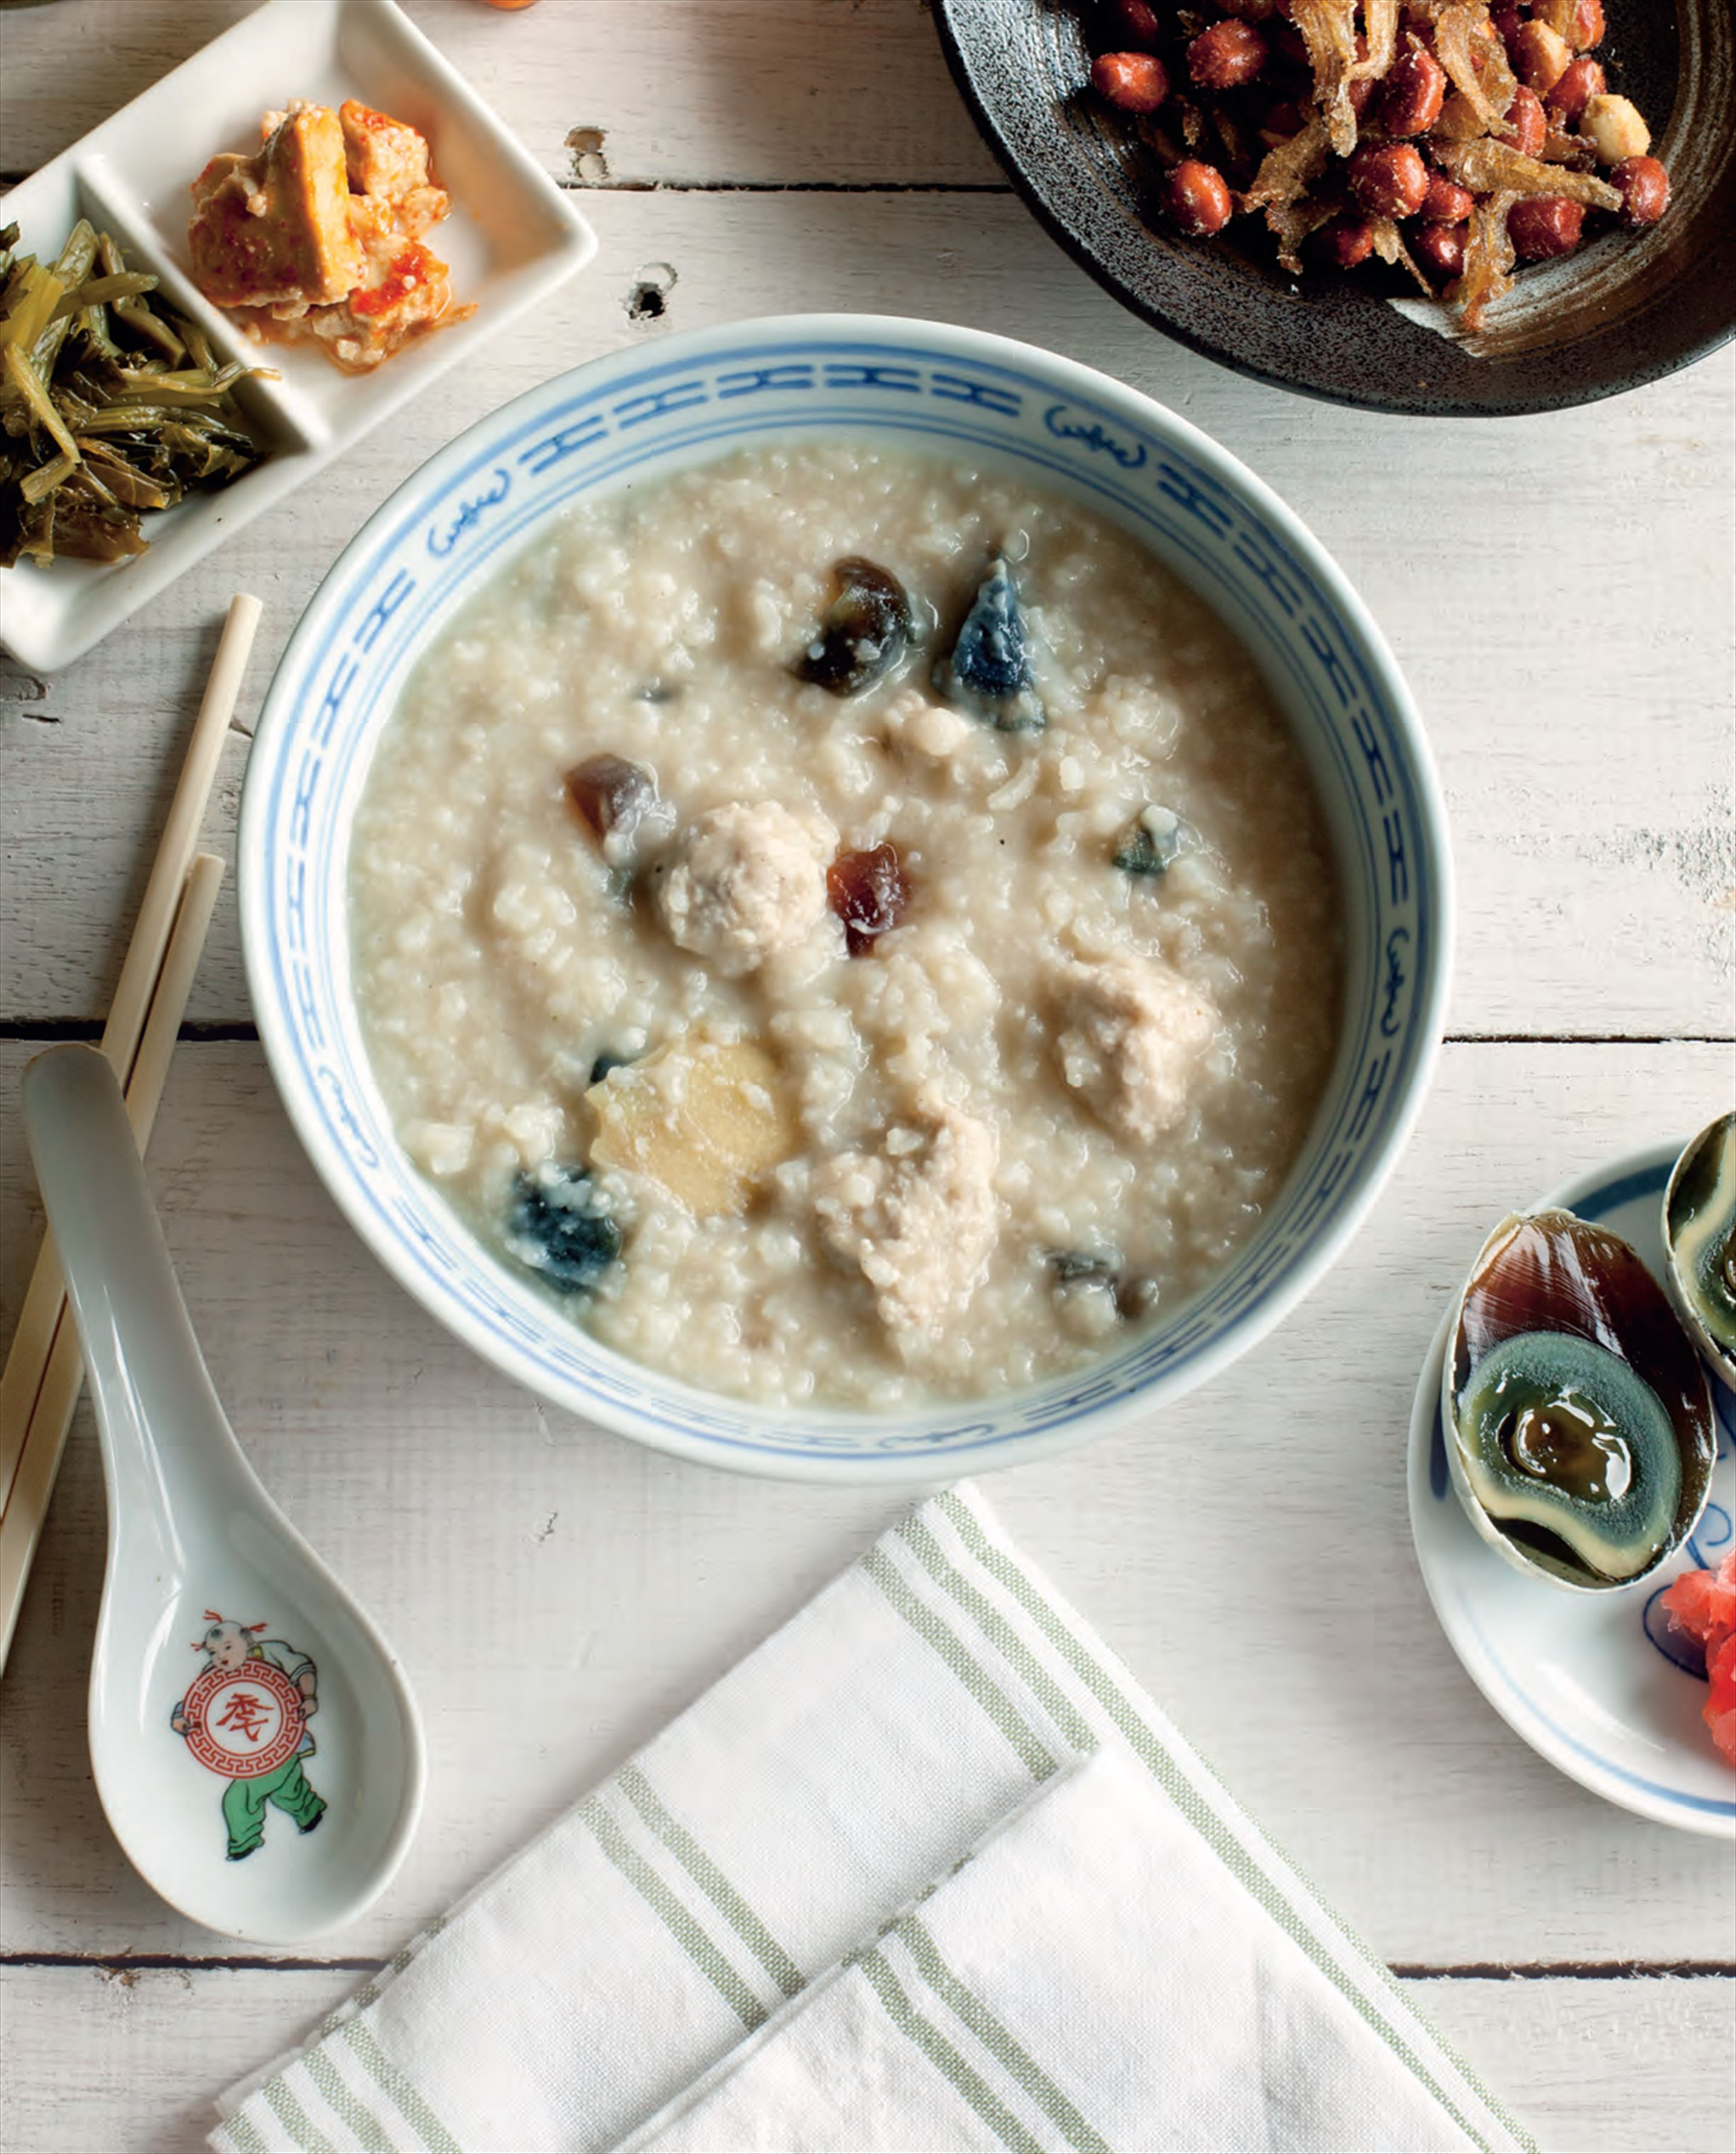 Pork mince balls and century eggs congee